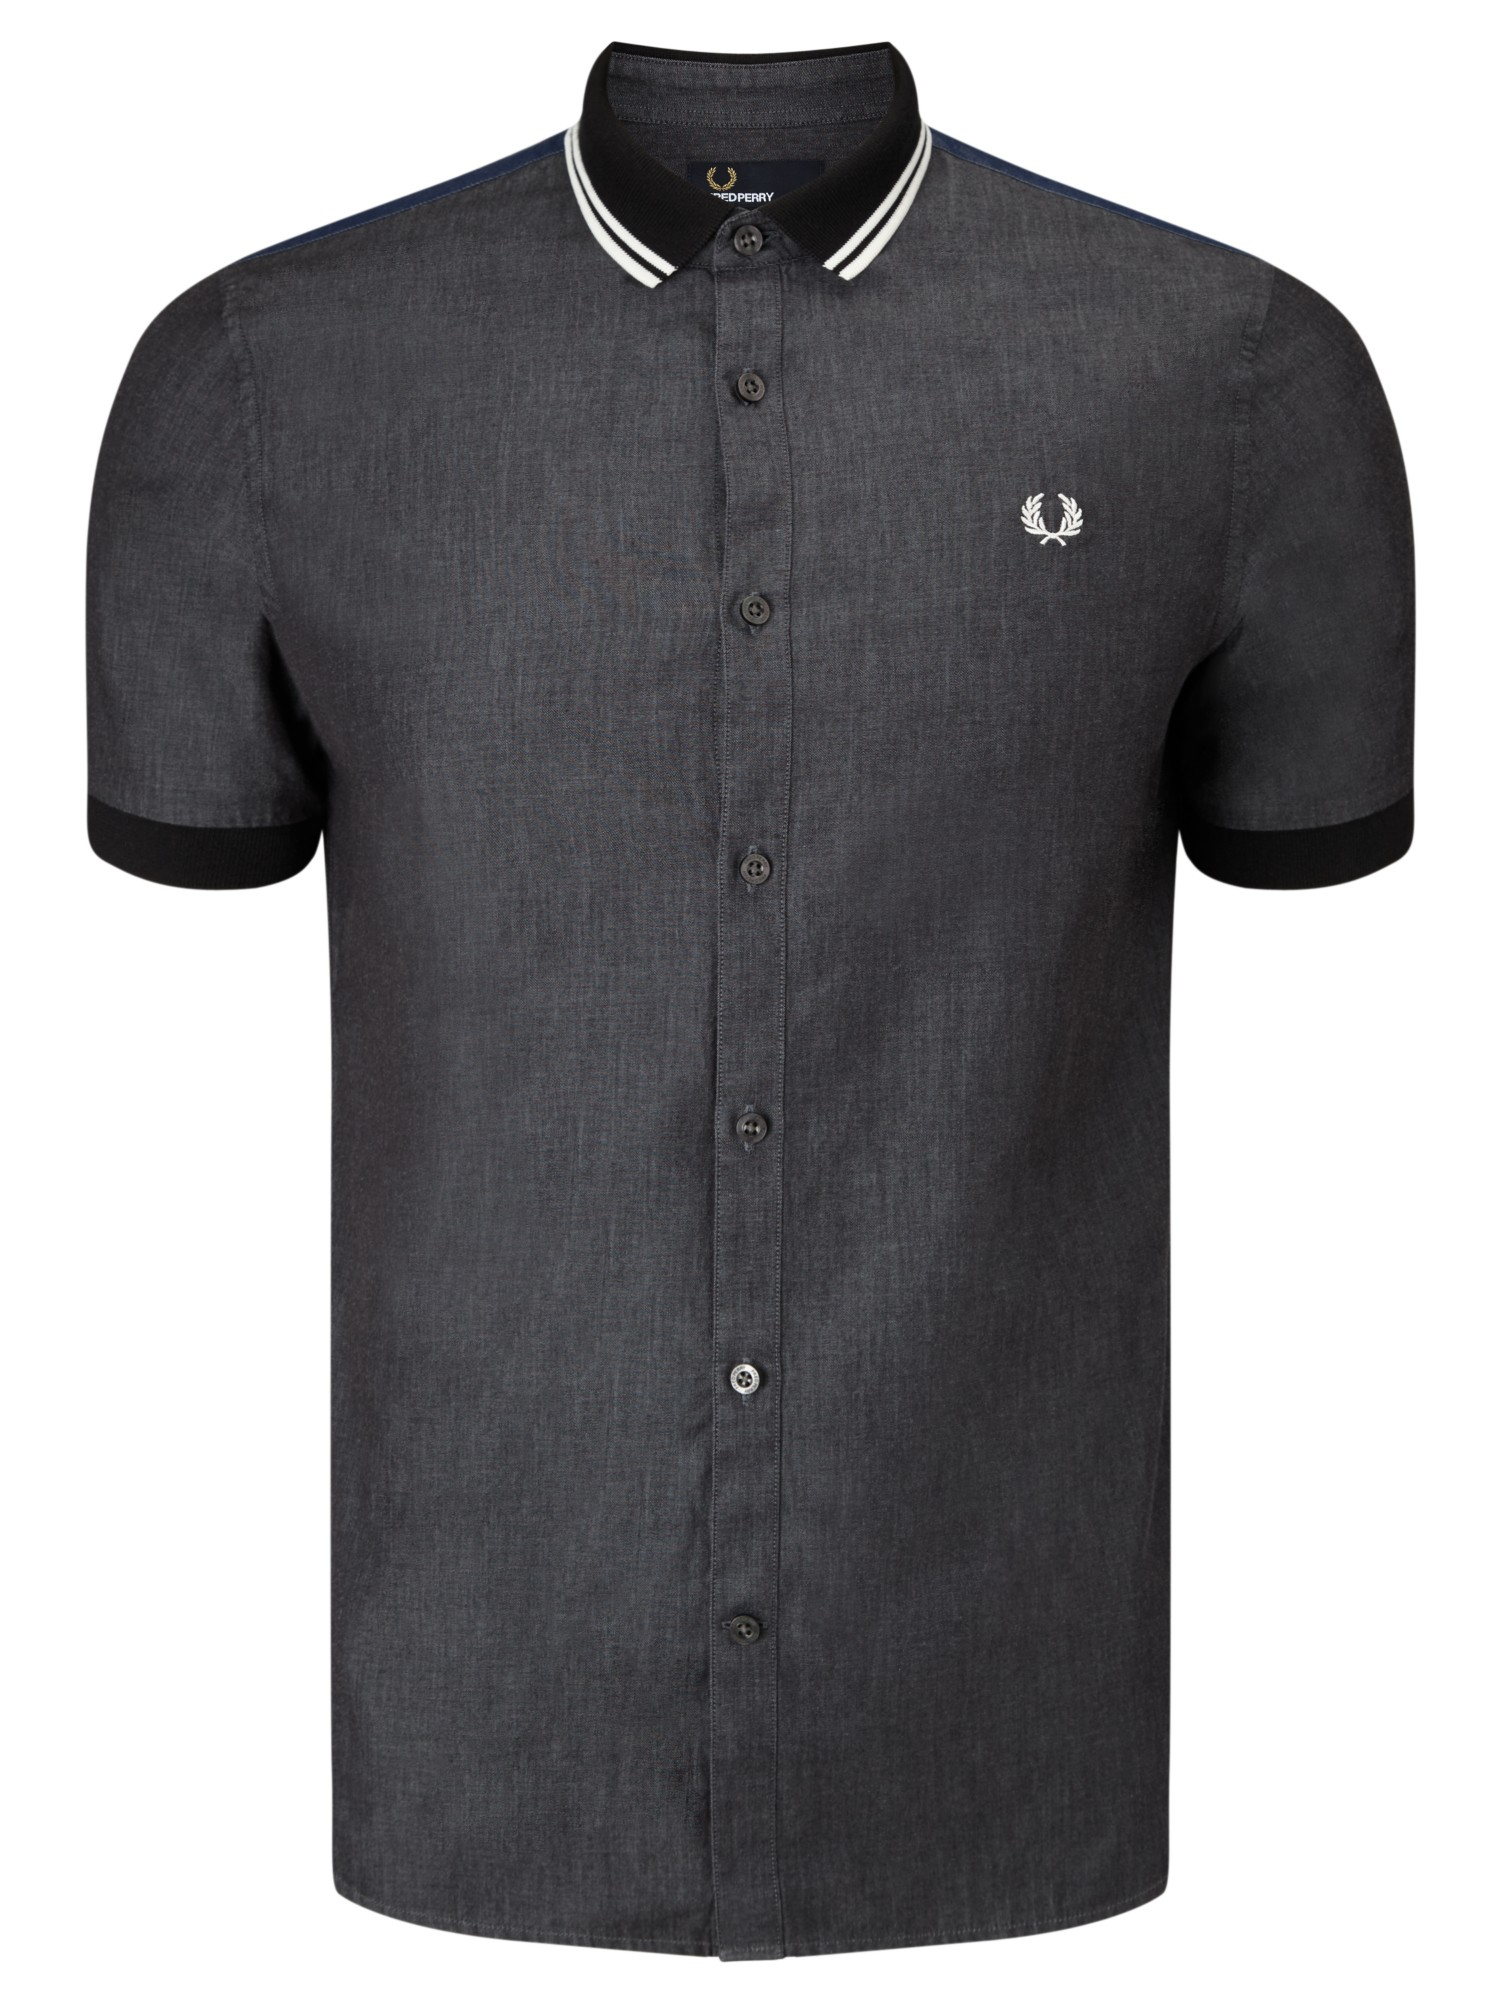 Fred Perry Chambray Mixed Shirt in Black for Men